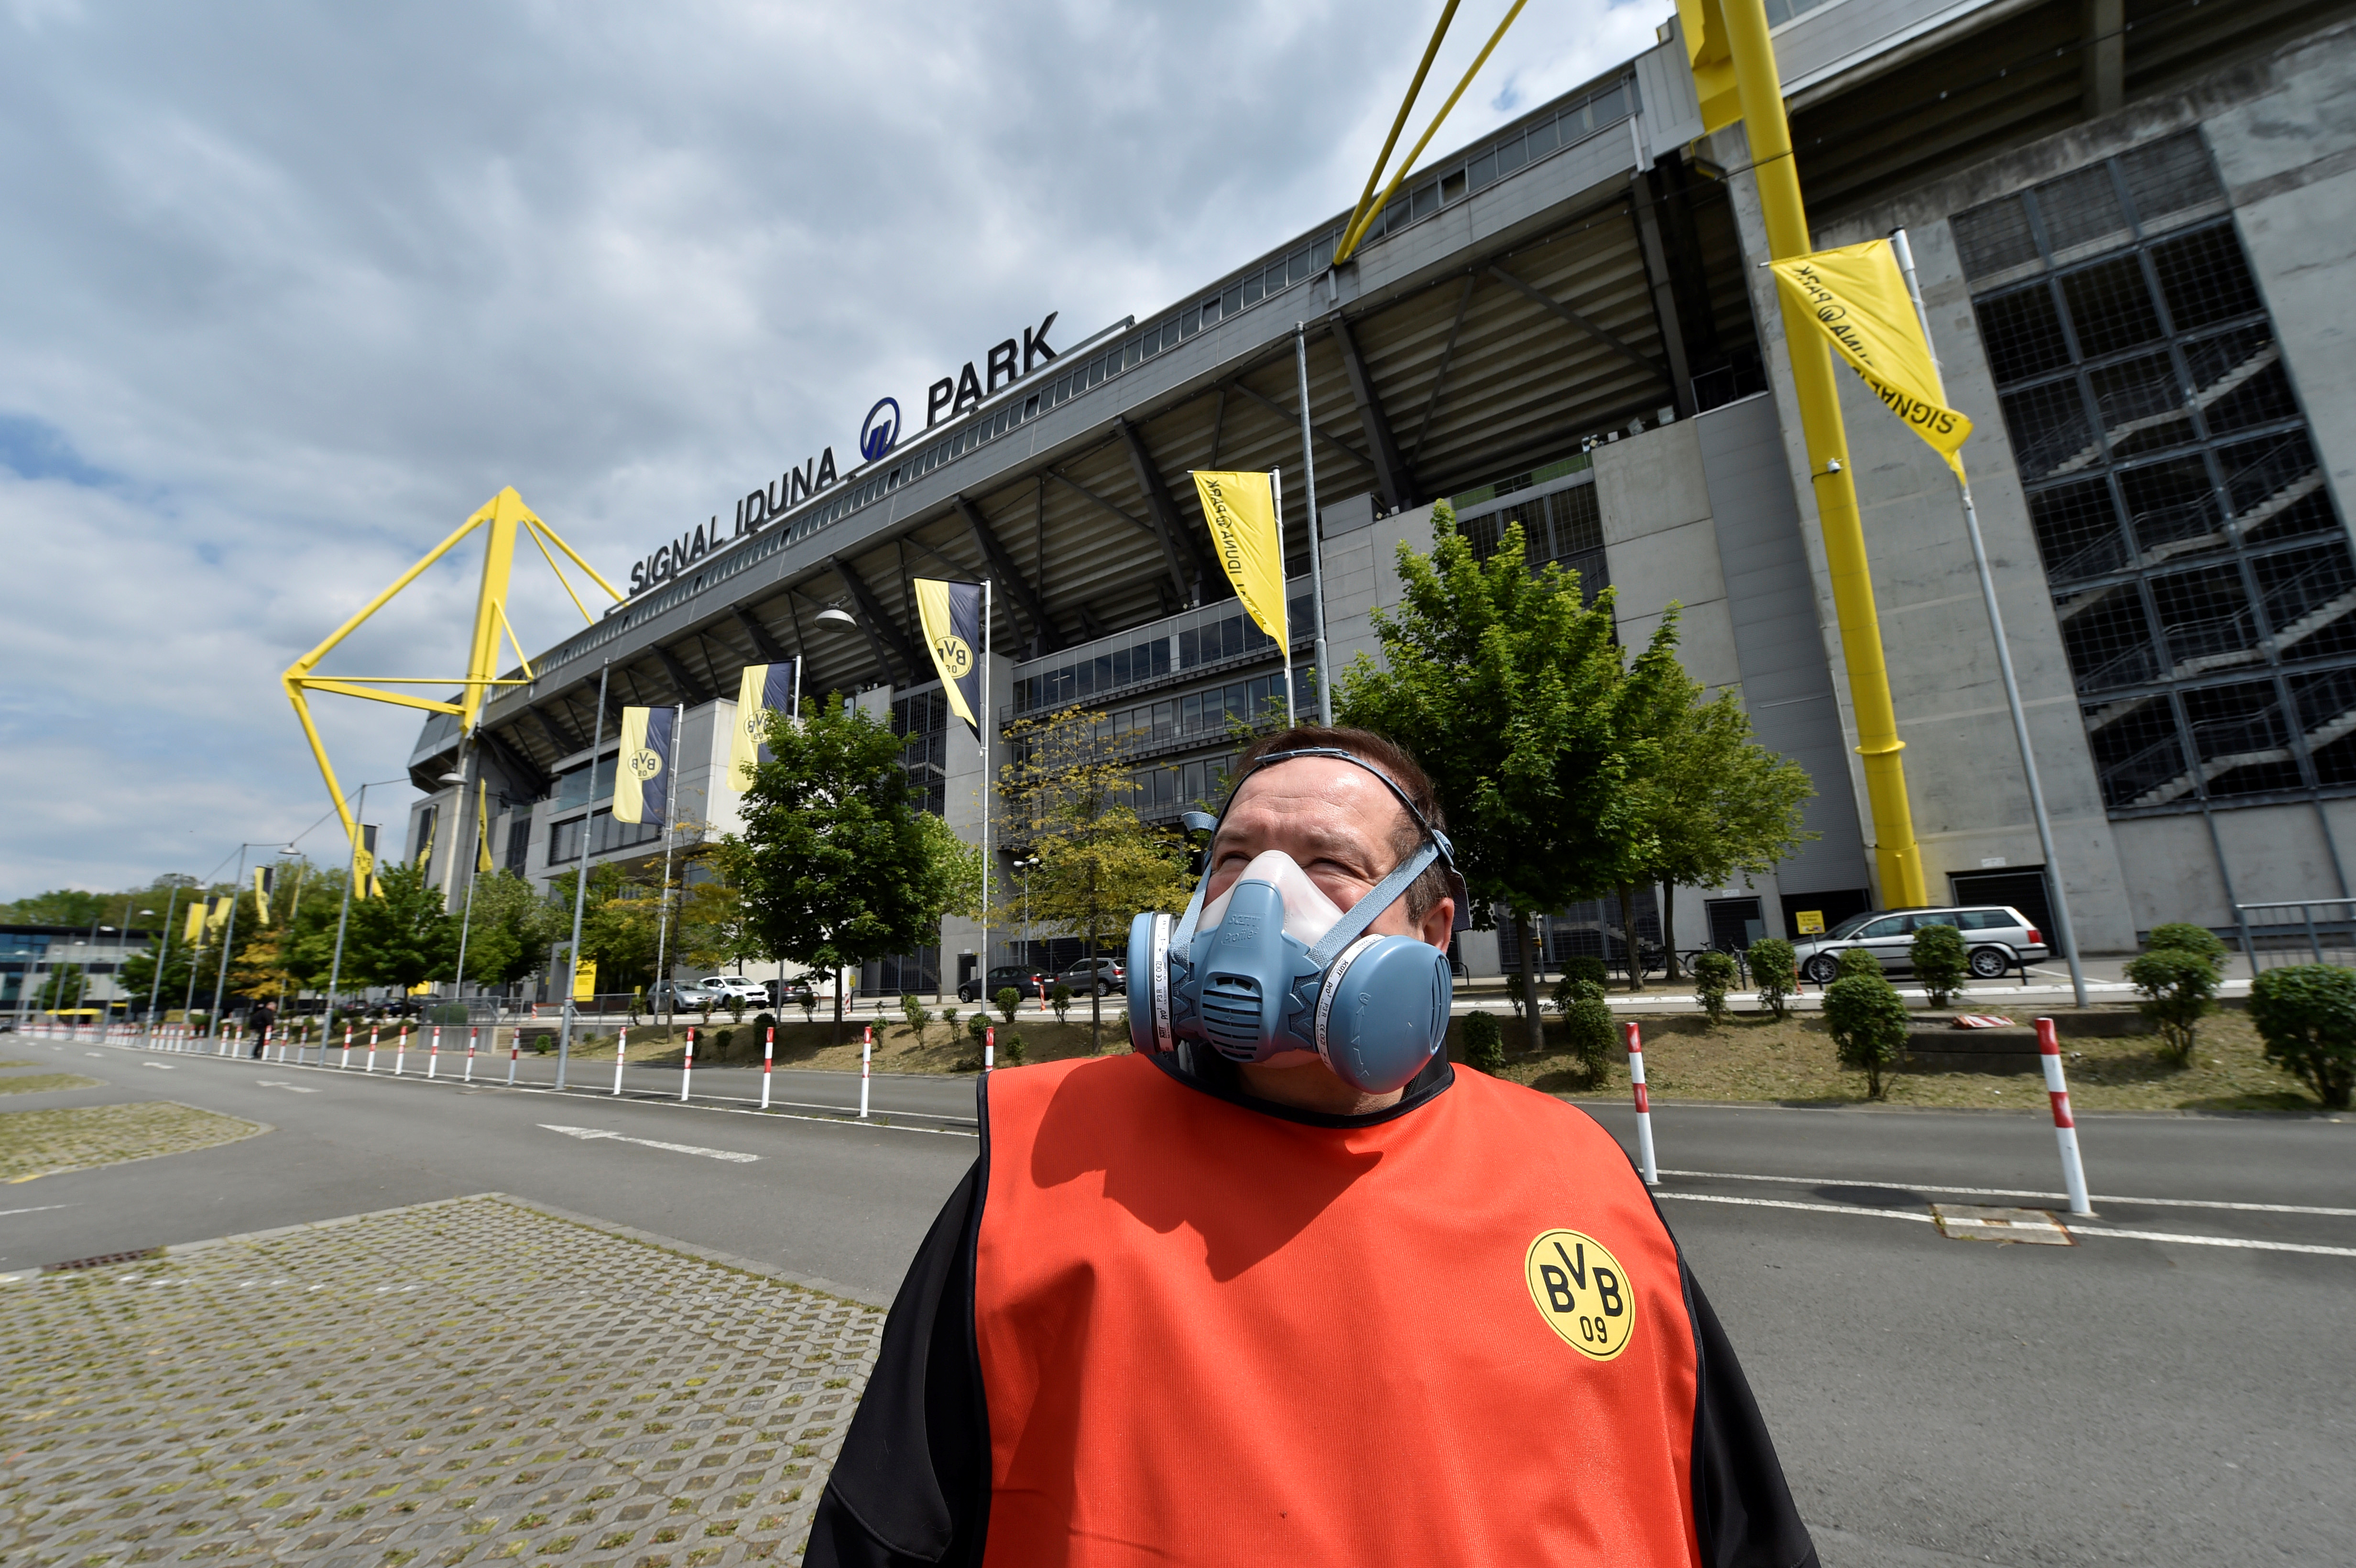 The mask worn by one of the workers in the vicinity of Signal Iduna Park (REUTERS)